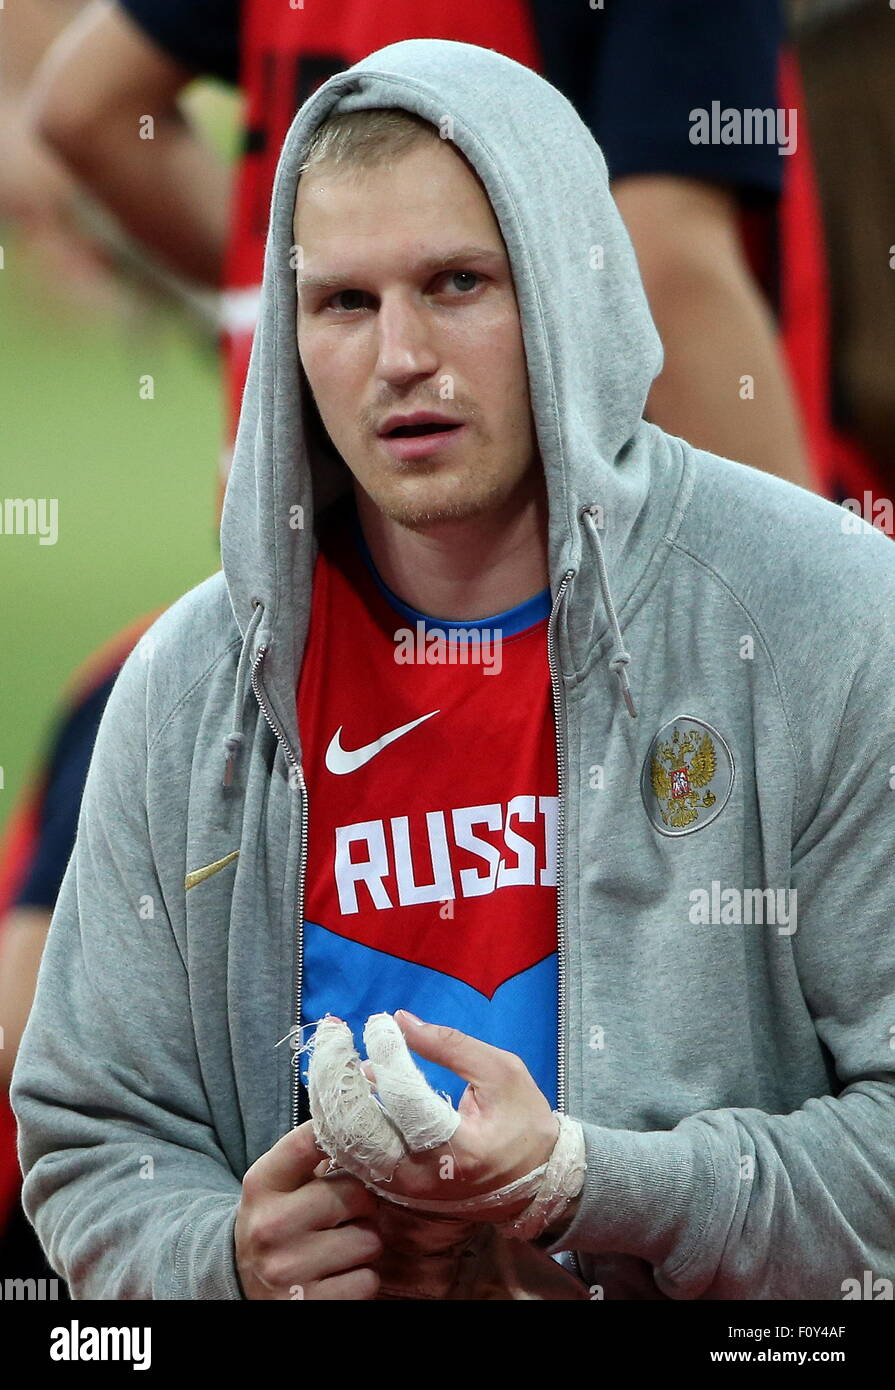 Beijing, China. 23rd Aug, 2015. Russia's Sergej Litvinov seen during the men's hammer throw final on Day - Stock Image